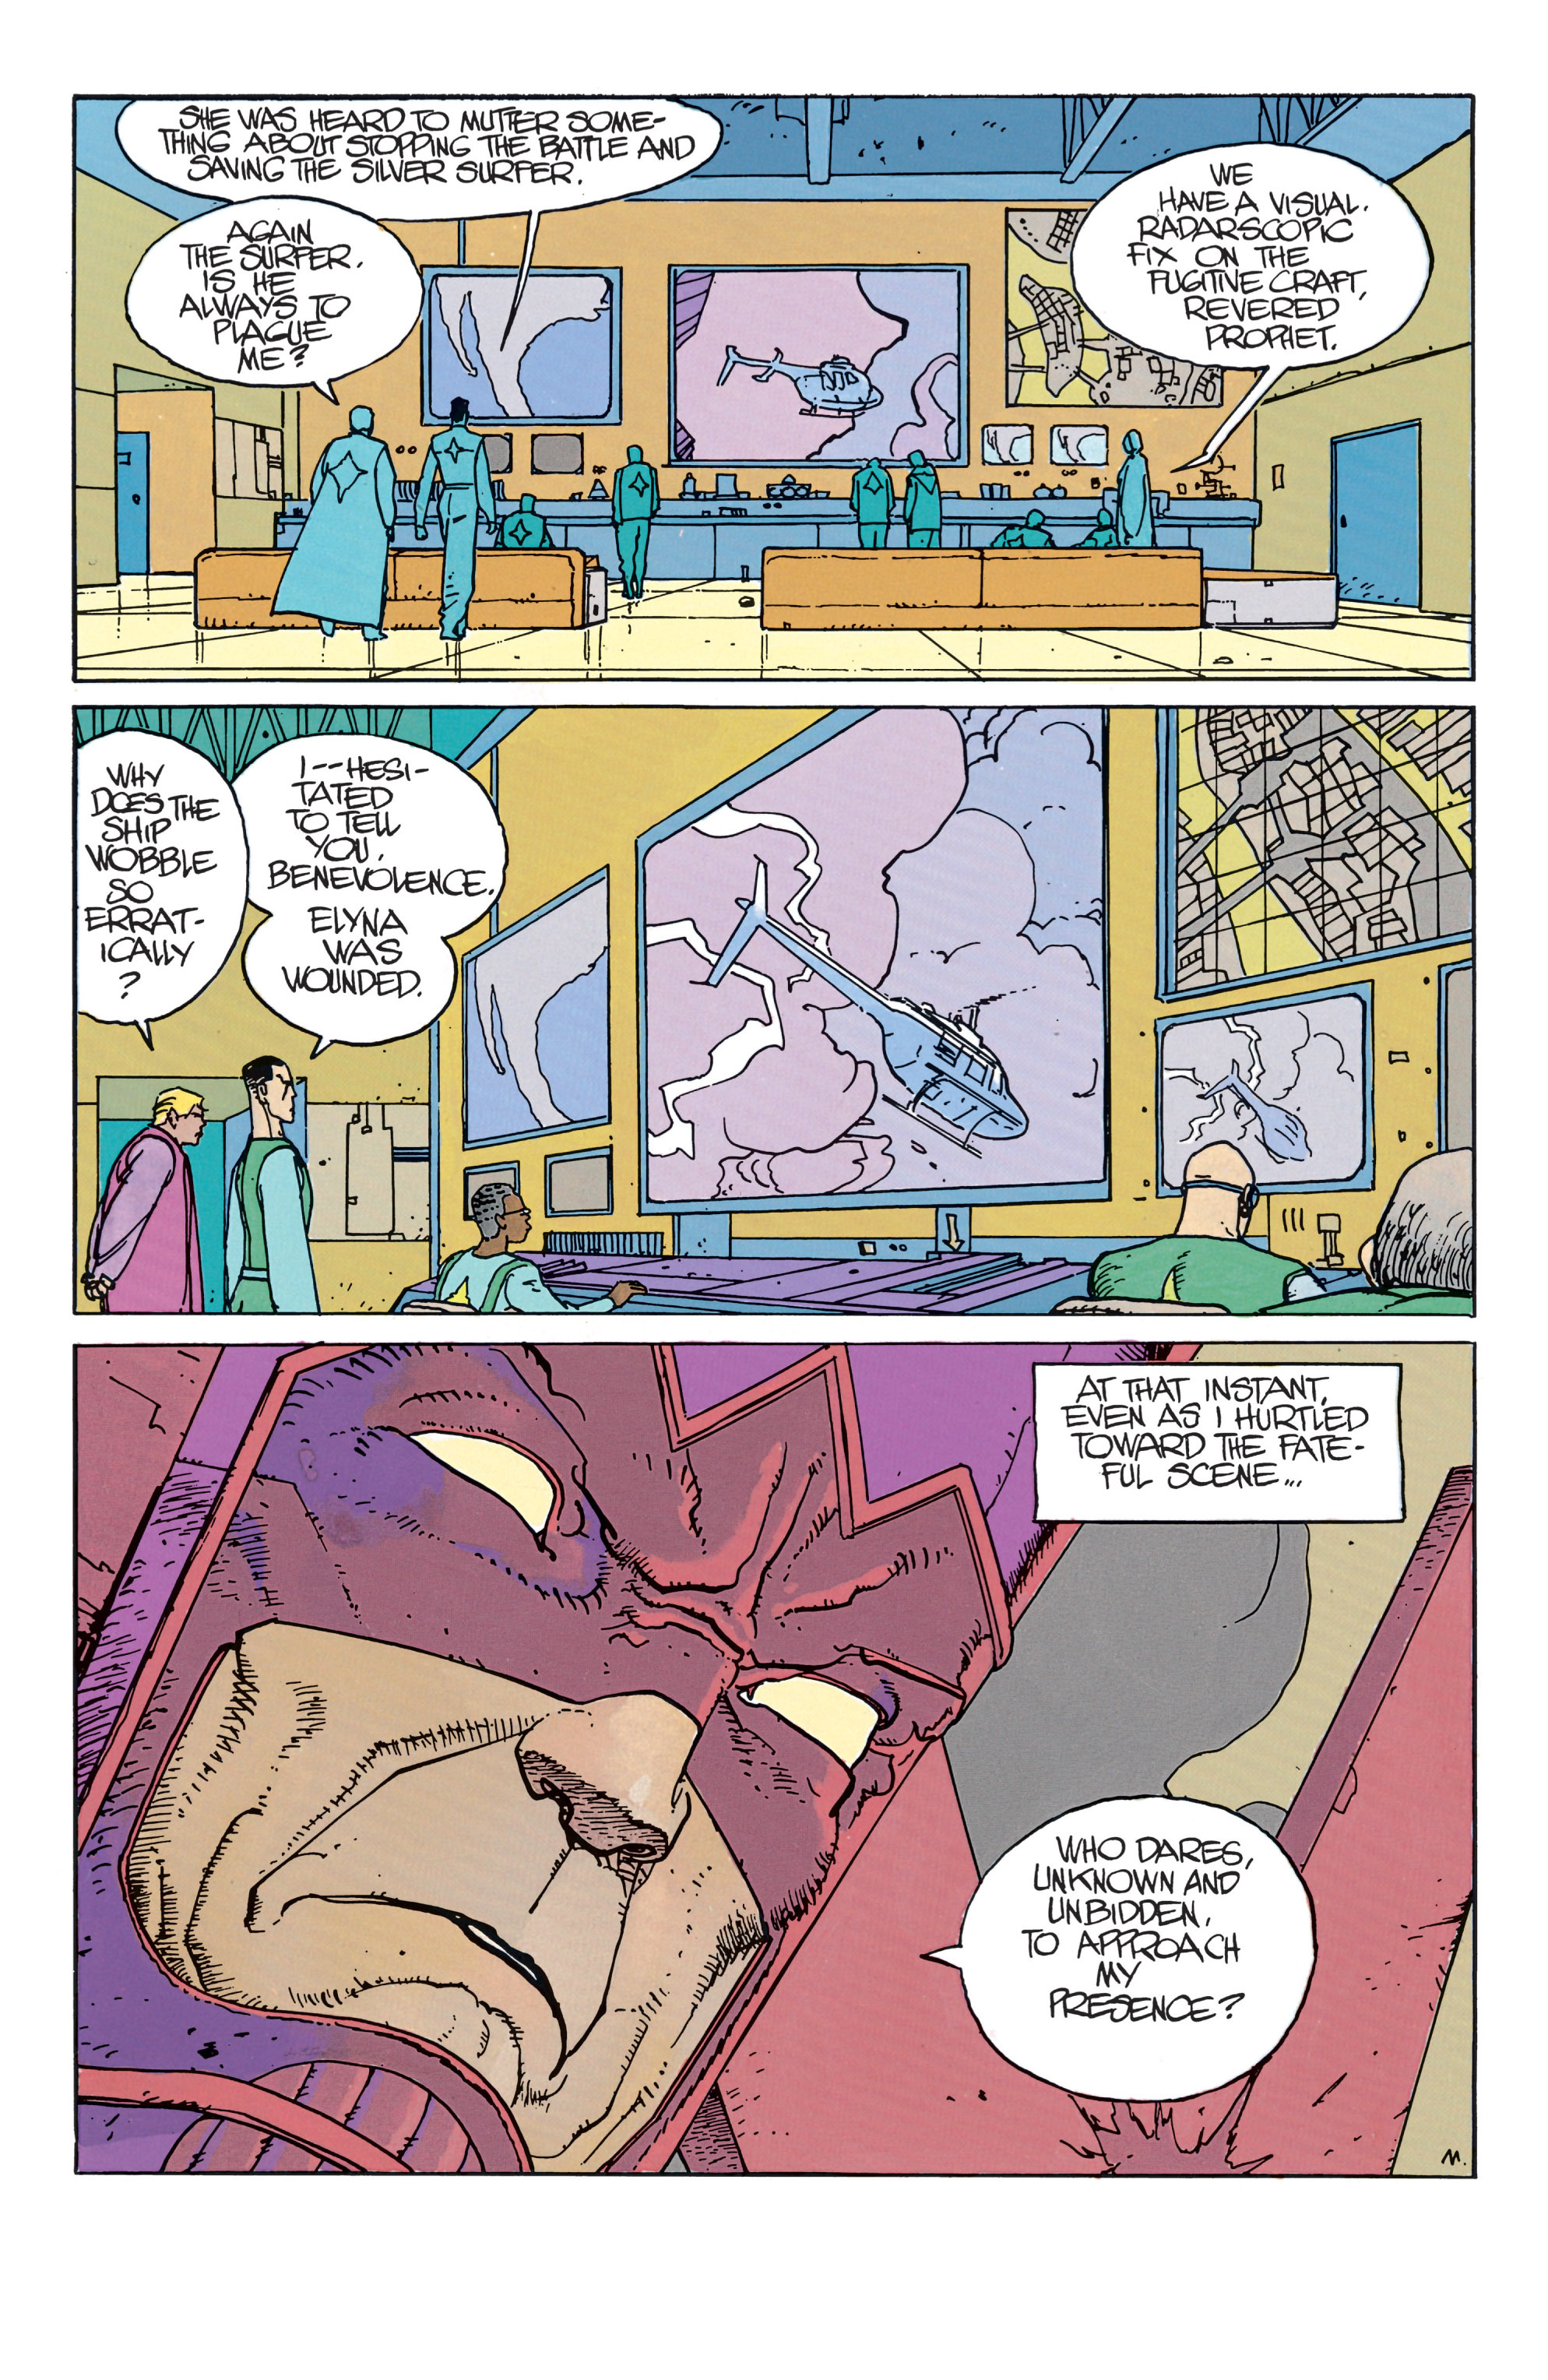 Read online Silver Surfer: Parable comic -  Issue # TPB - 41